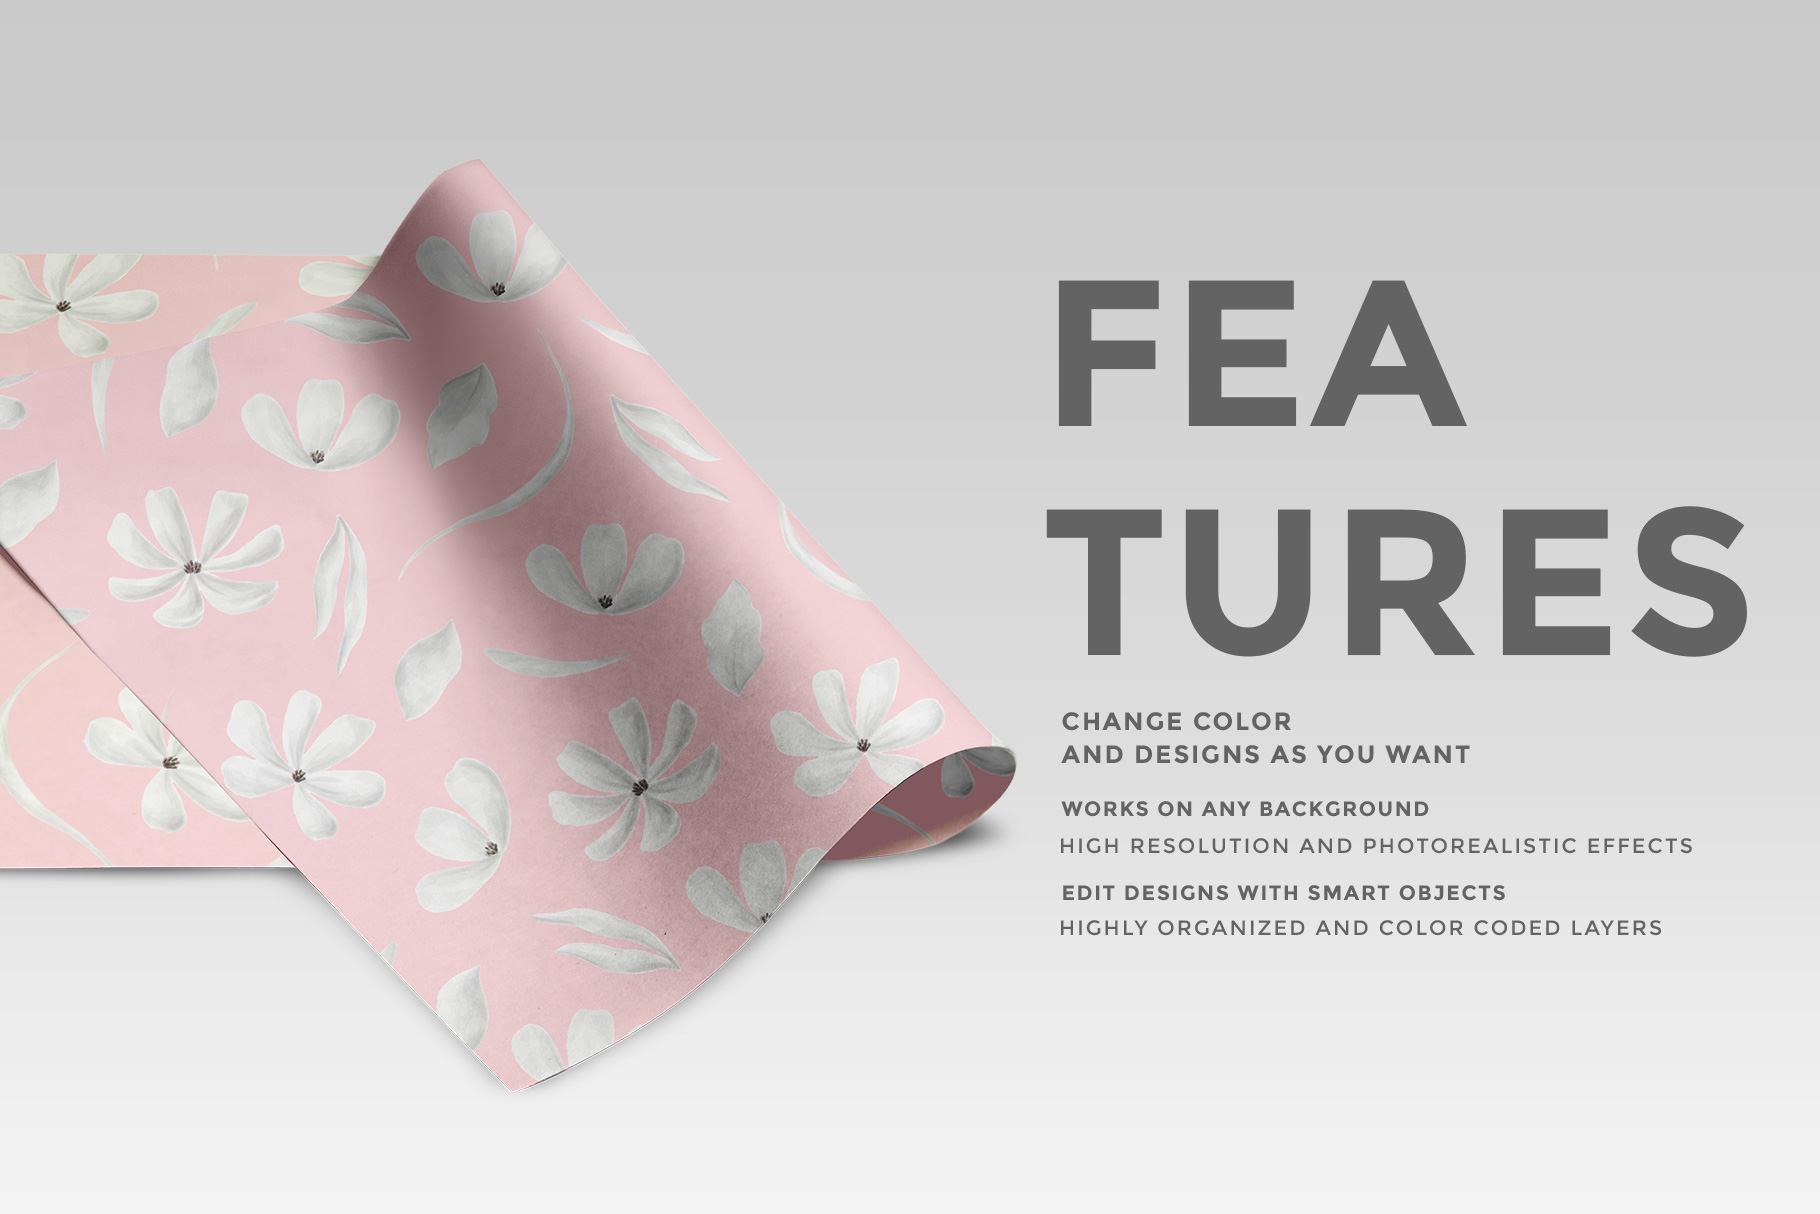 features of the top view folded wrapping paper mockup